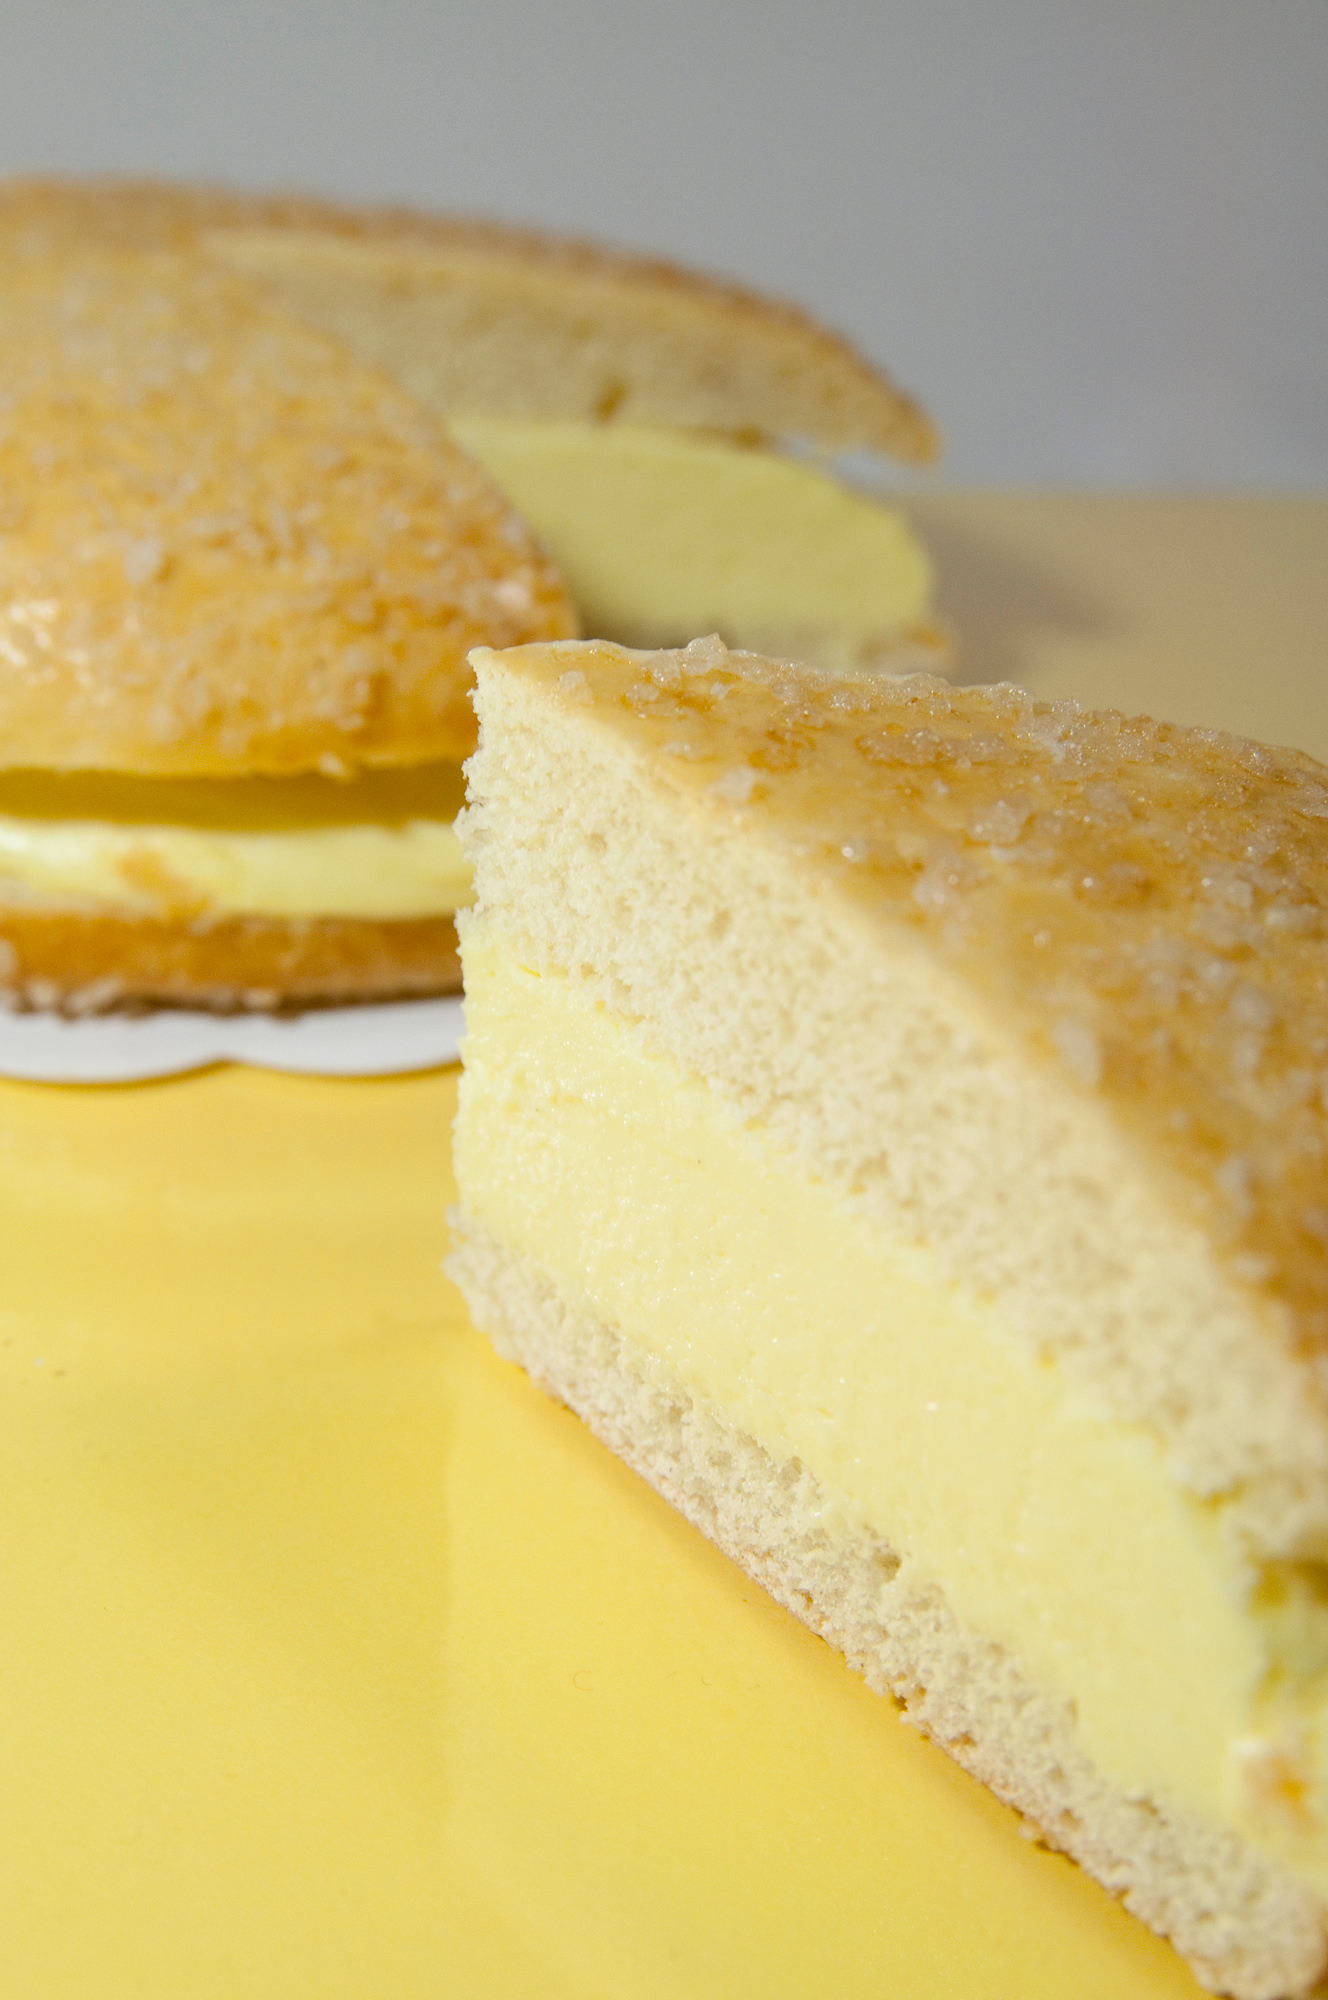 La Tarte Tropézienne sounds exotic but is one found in one of the best bakeries in Aix en Provence. Discover what else to eat in Provence.